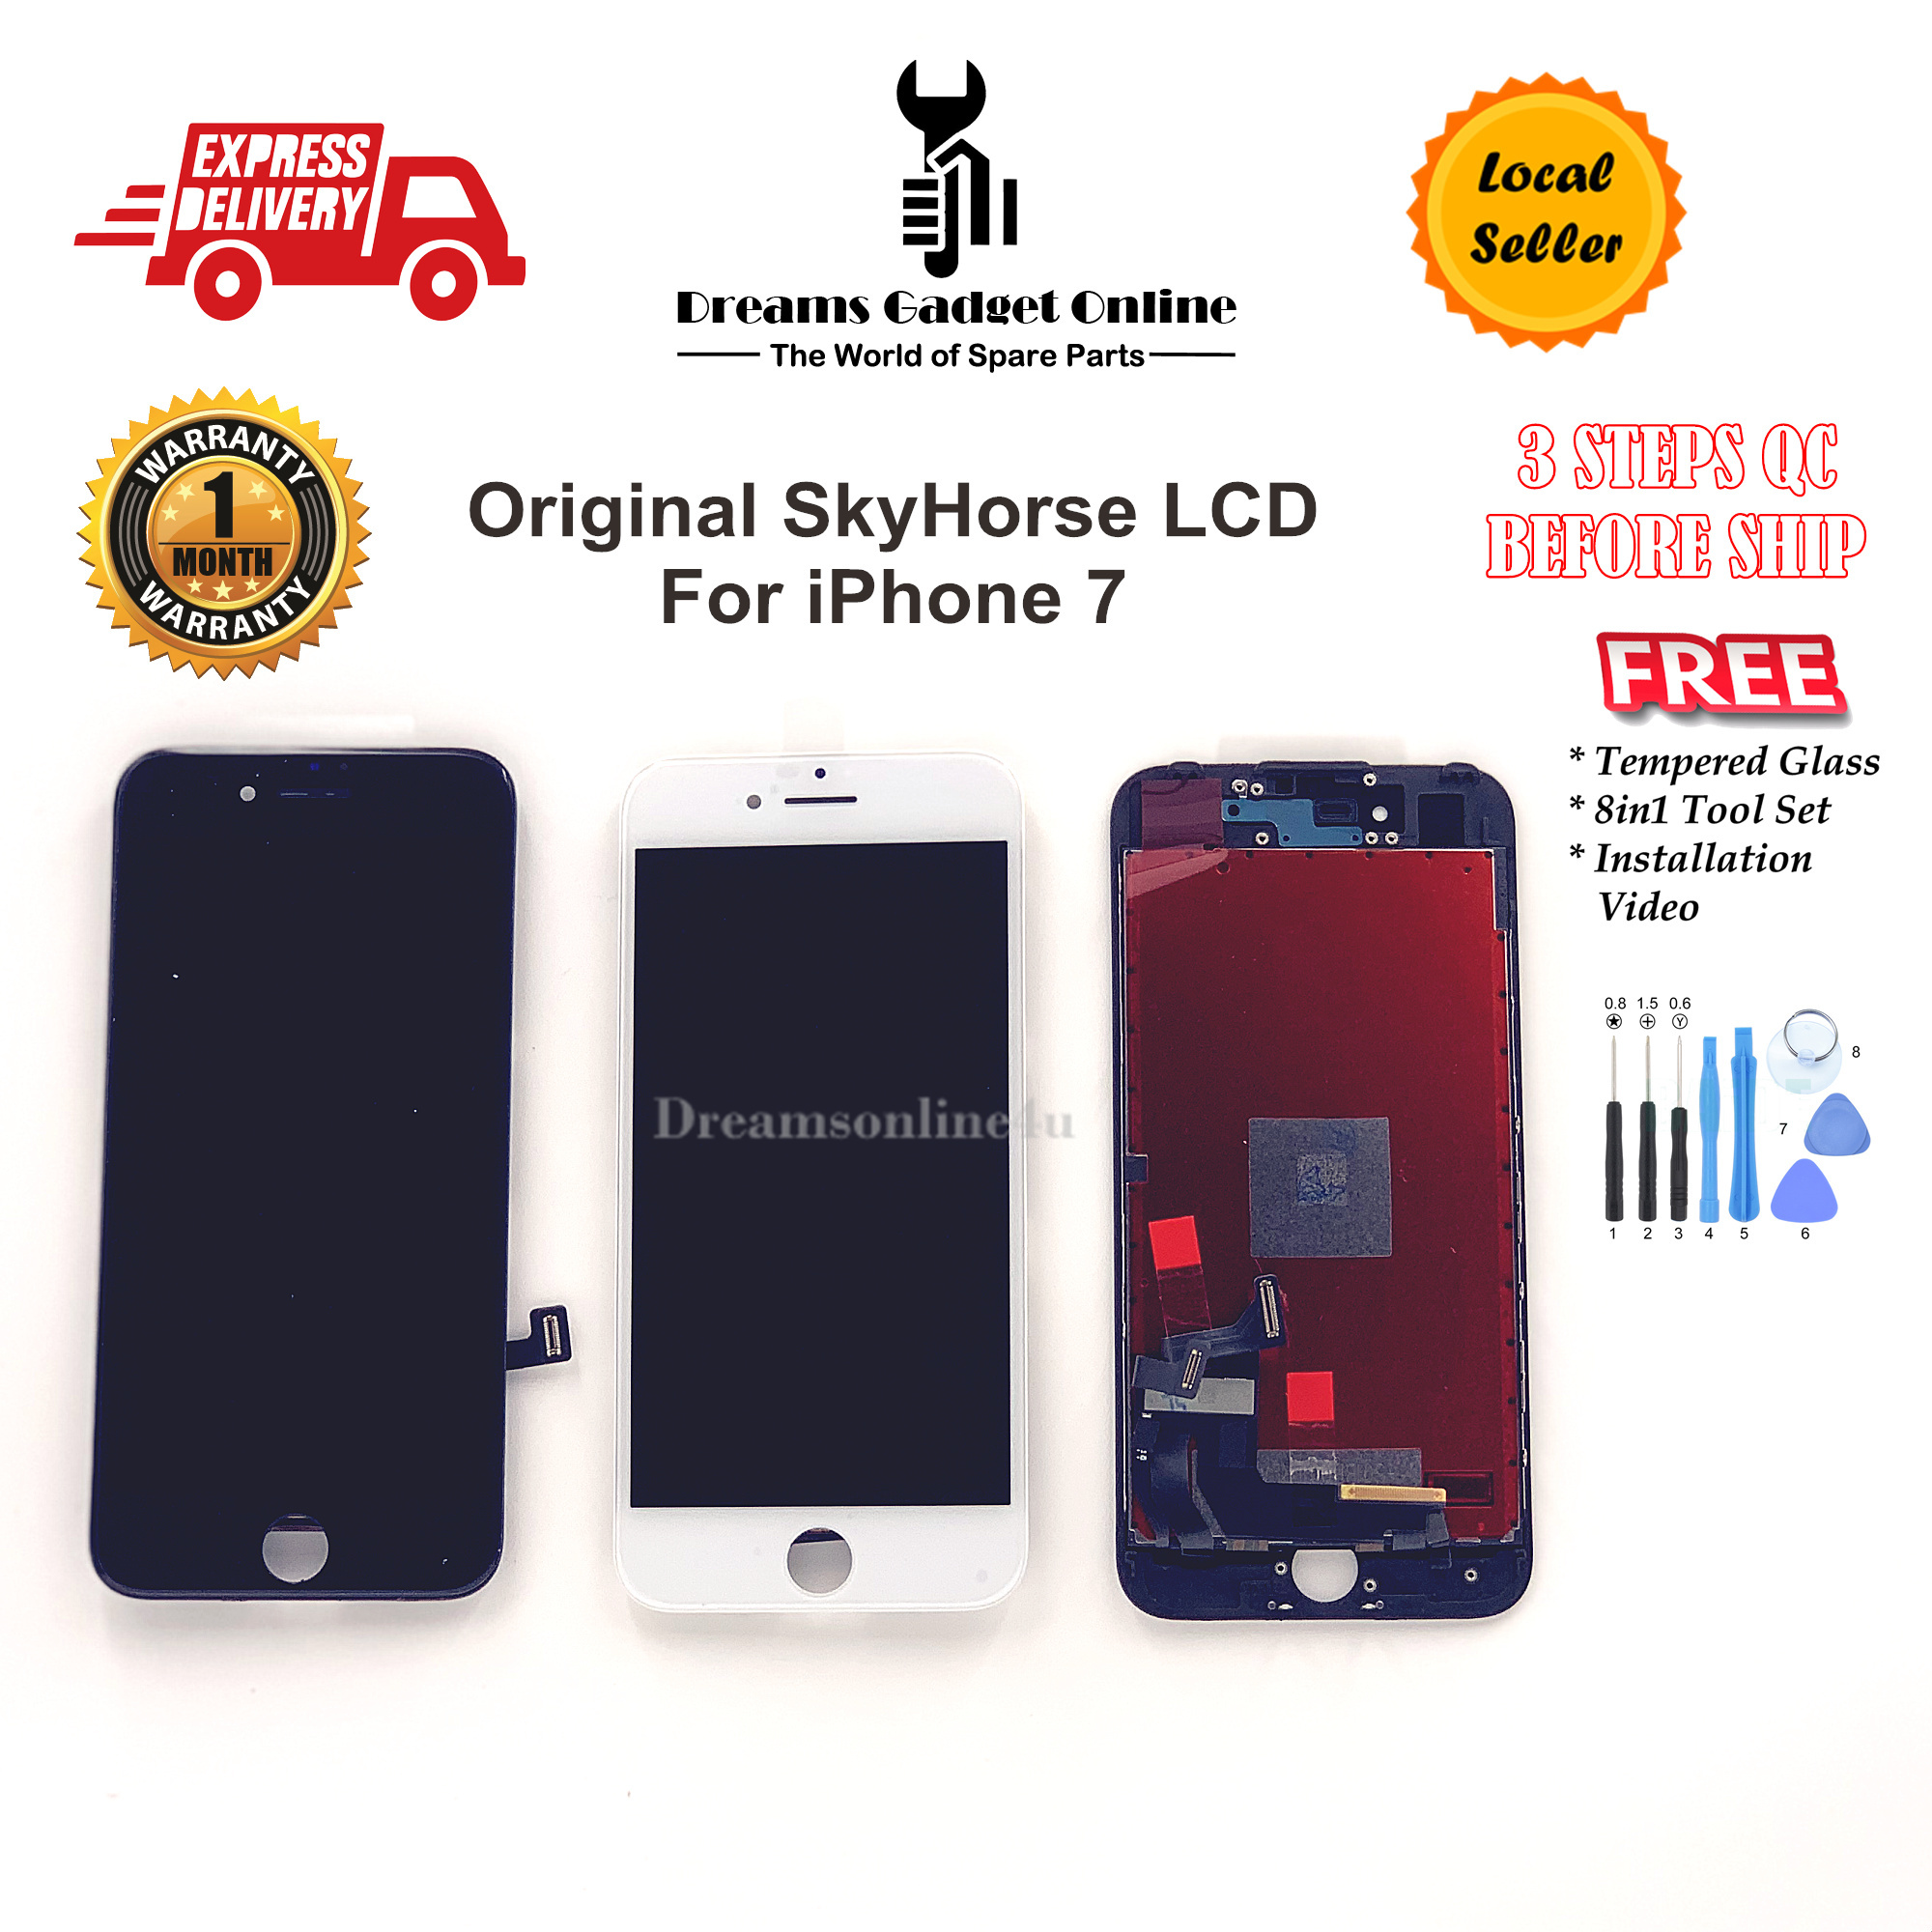 iPhone 7 Skyhorse(1).jpg